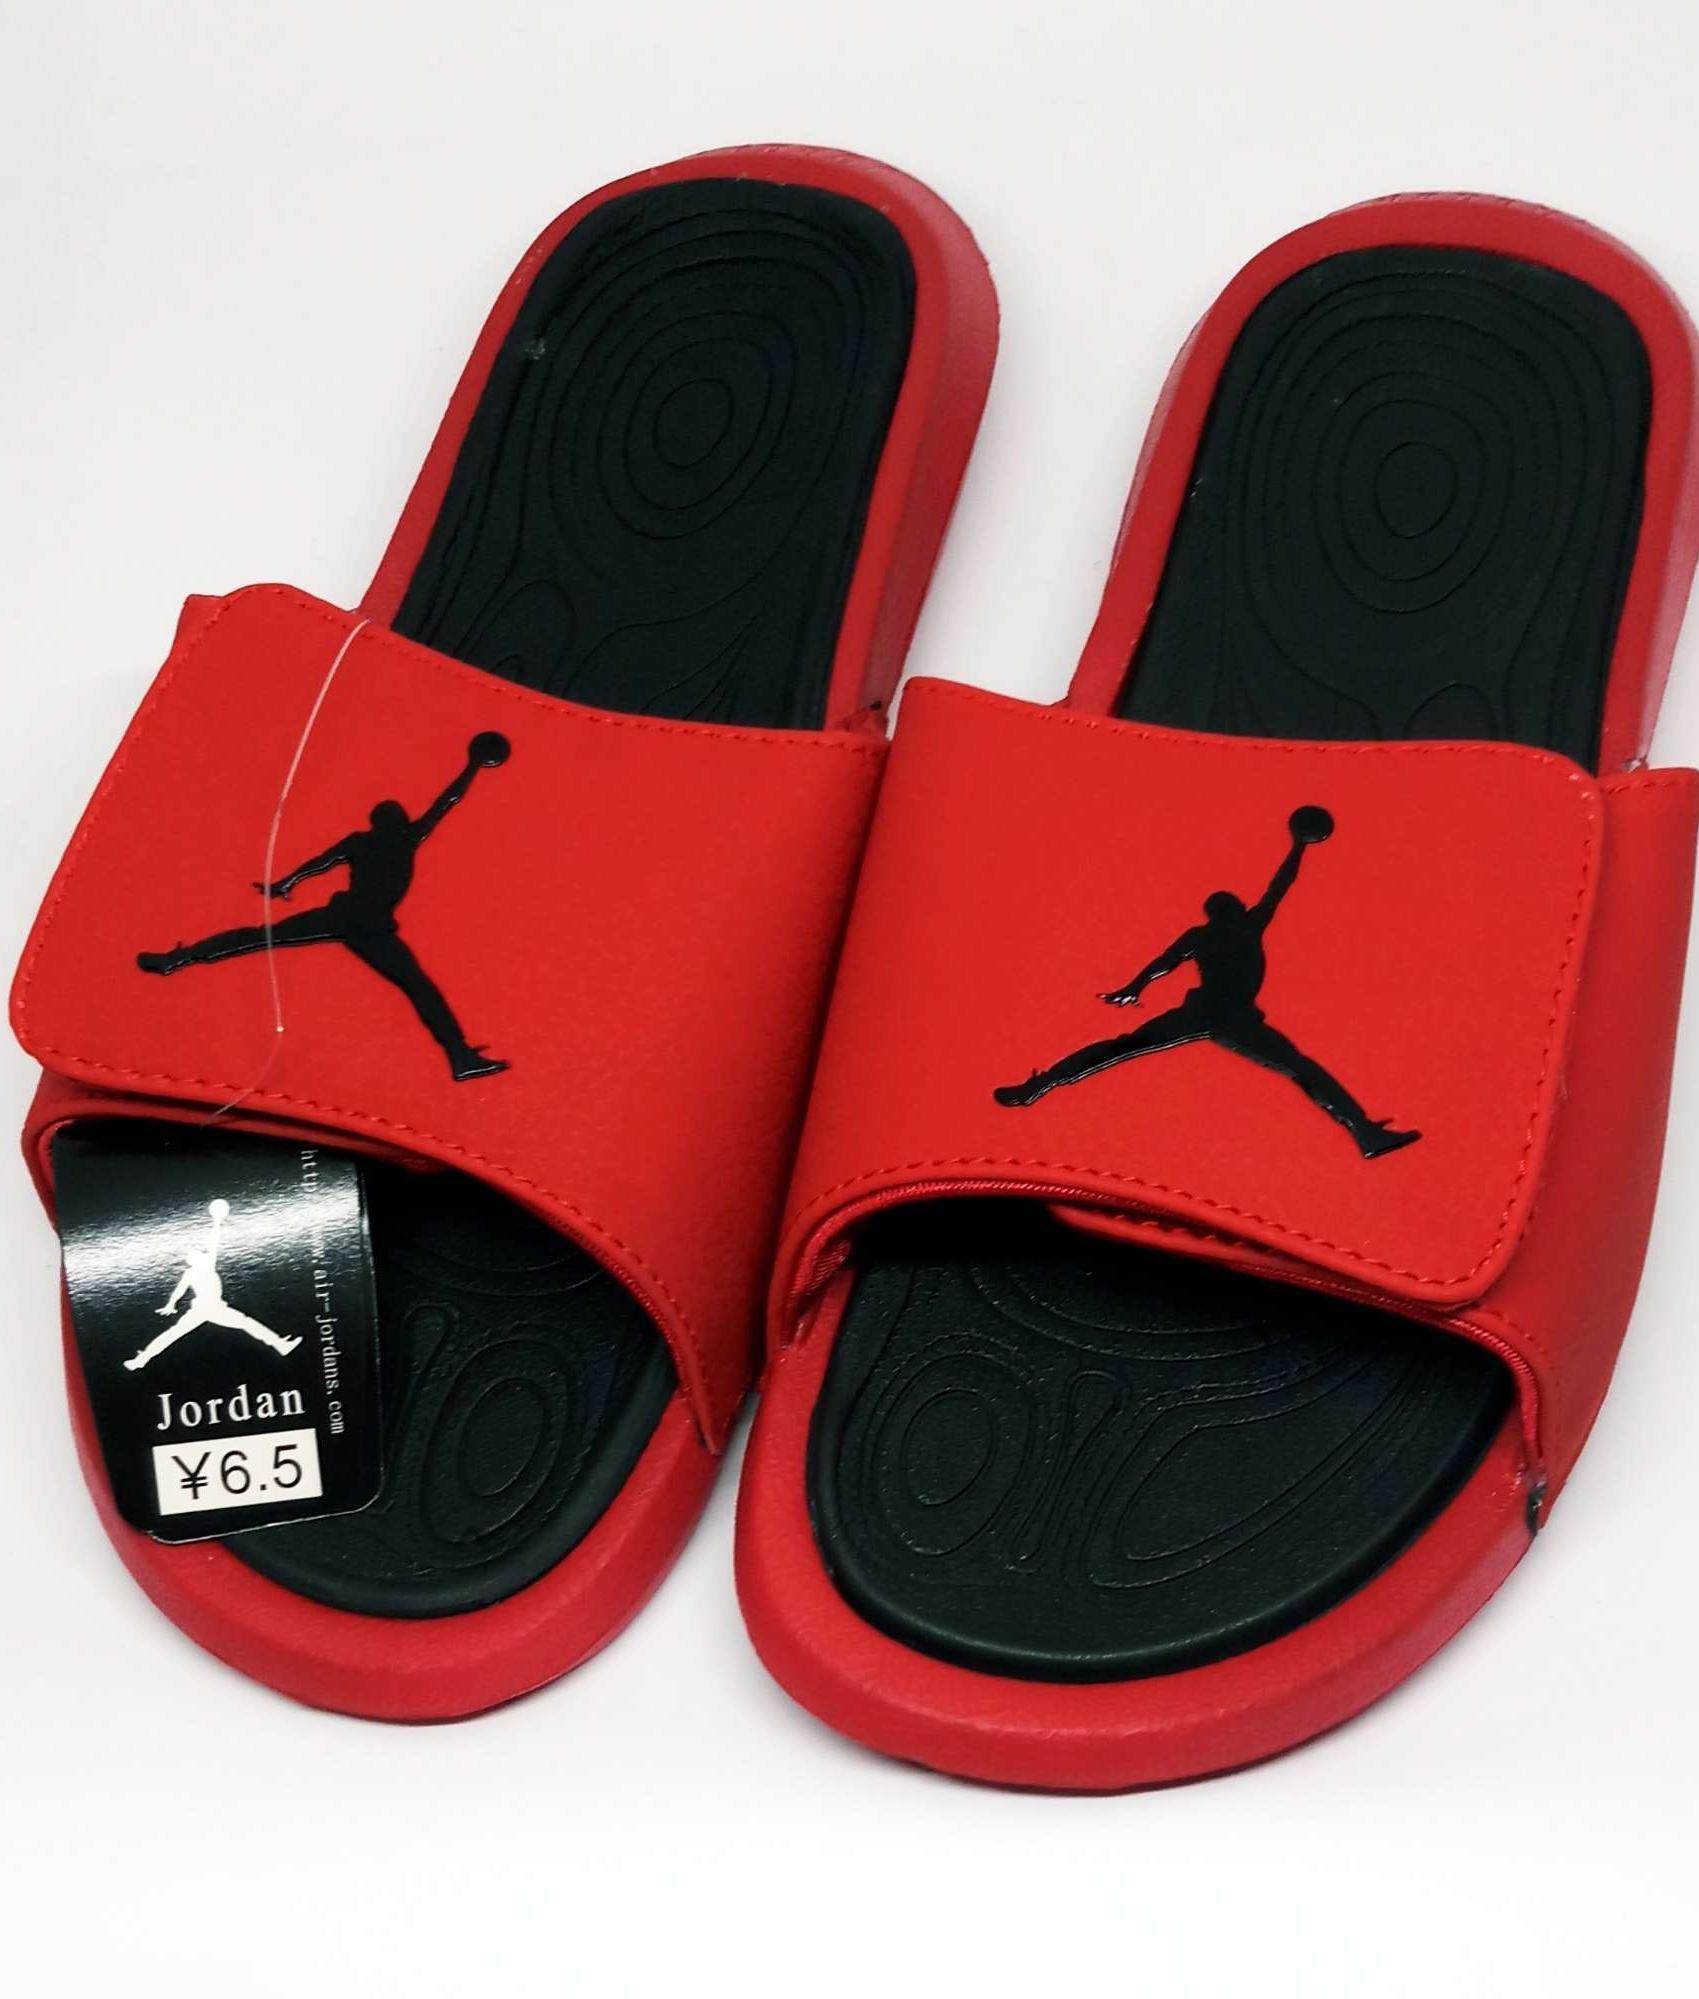 competitive price eb731 c394e Jordan Hydro Red Black Slippers